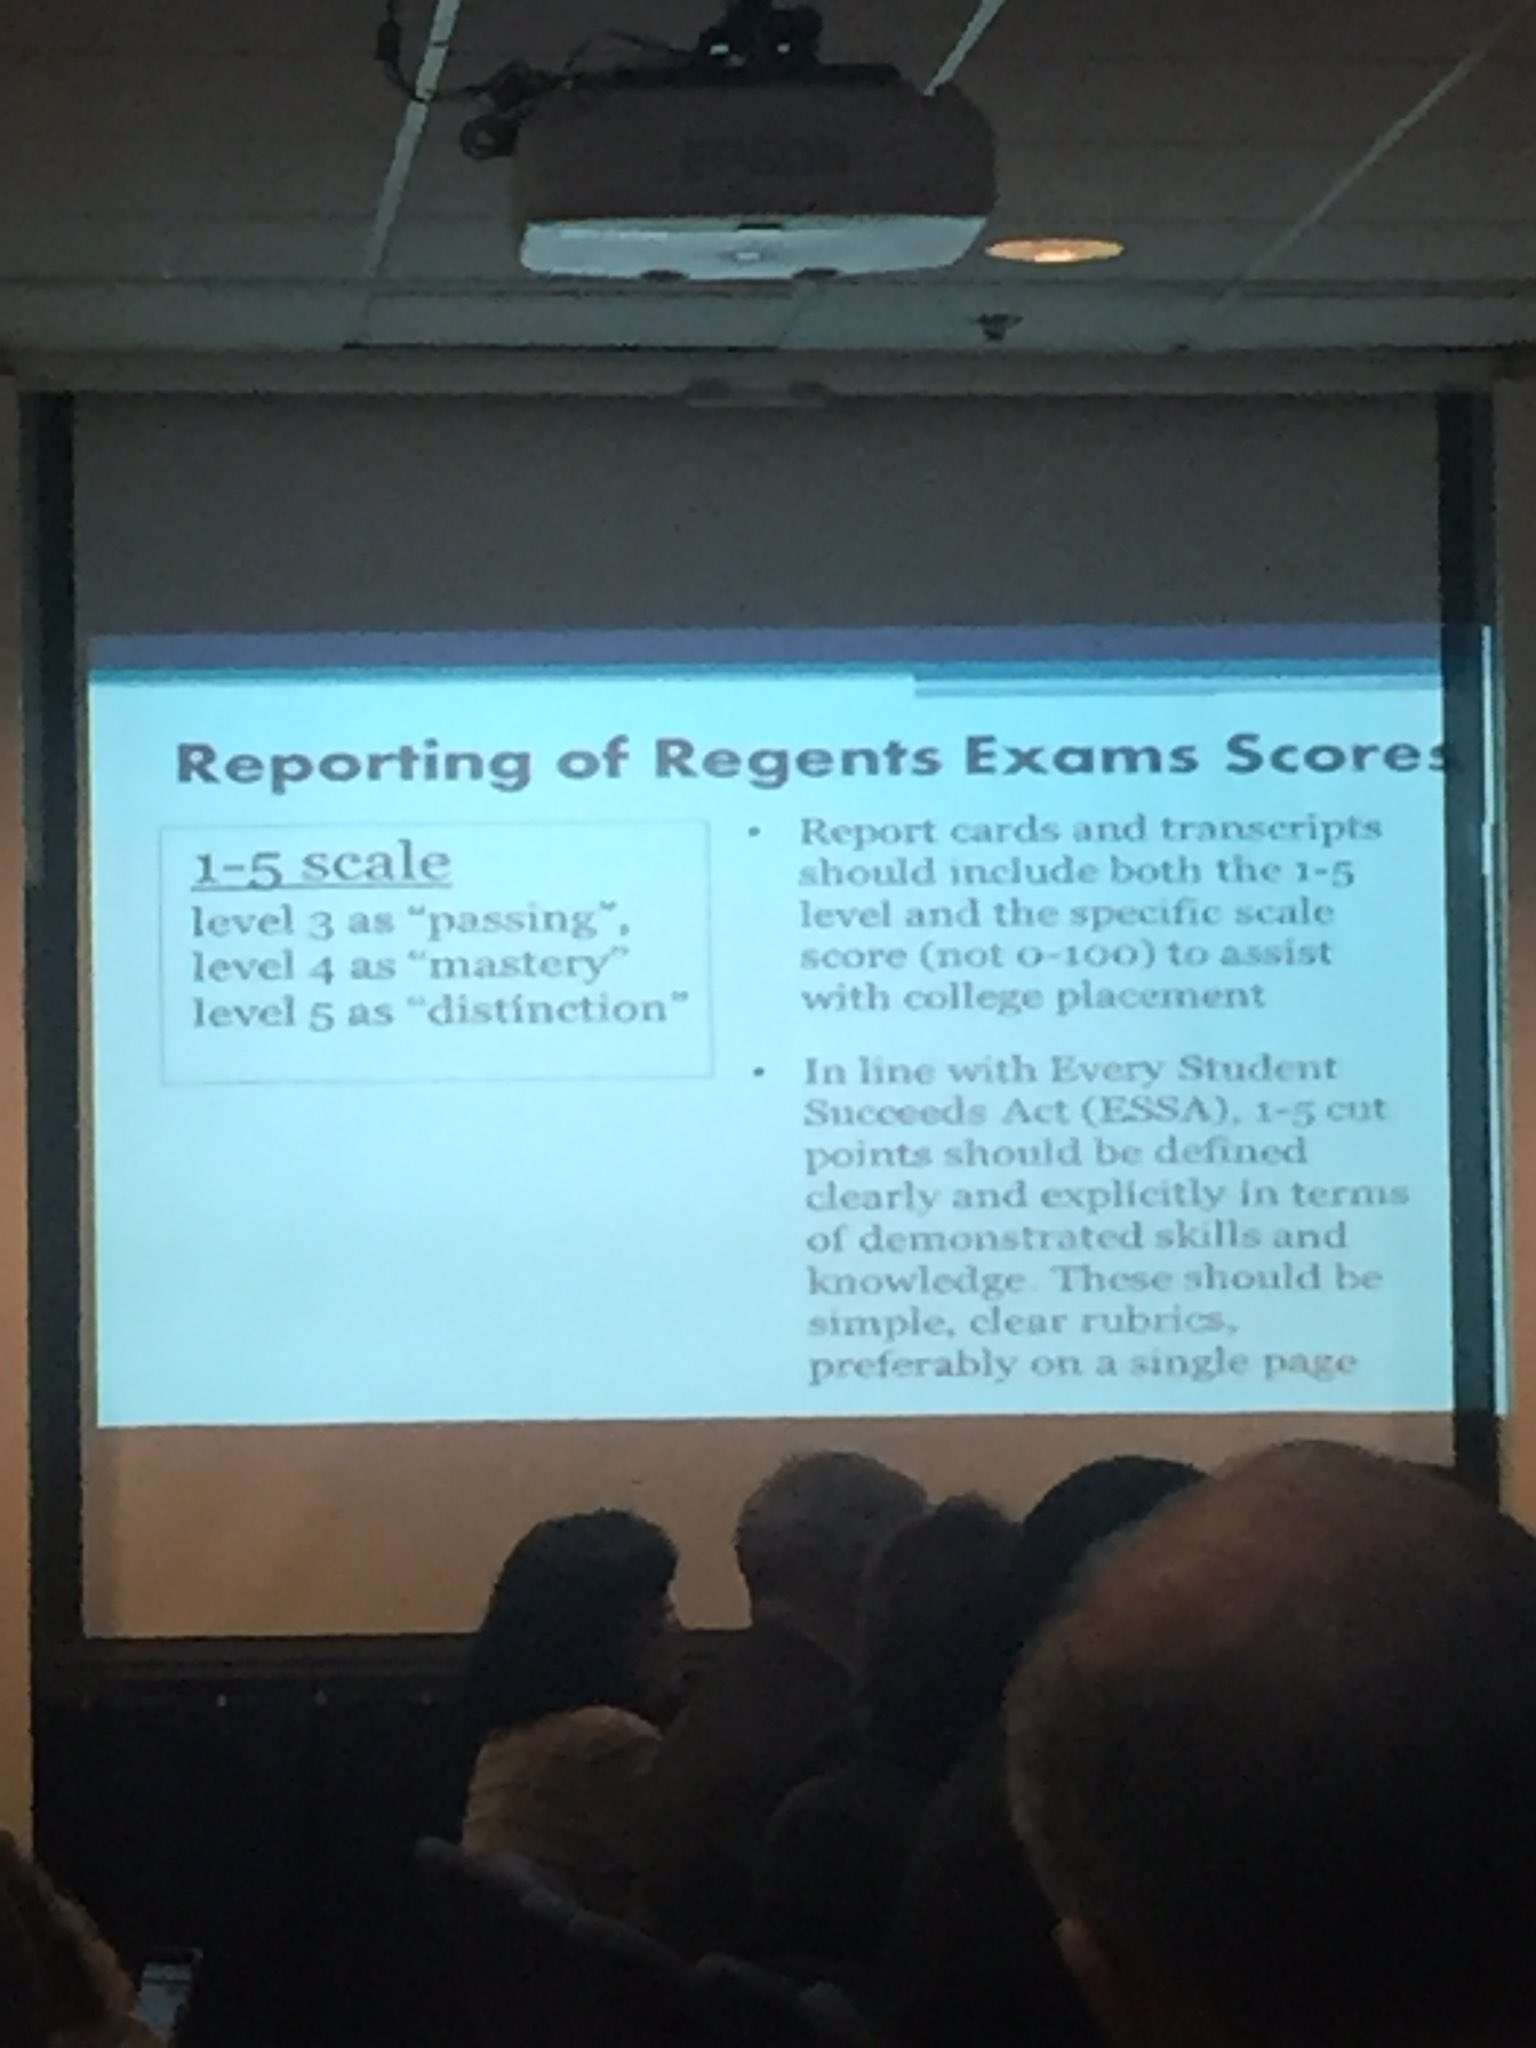 Workgroup says reporting of regents exam scores should start fresh, 1-5 scale, not 0-100 scale @NYSEDNews @NYSPTA This is a BIG shift https://t.co/7obVI6FaZH